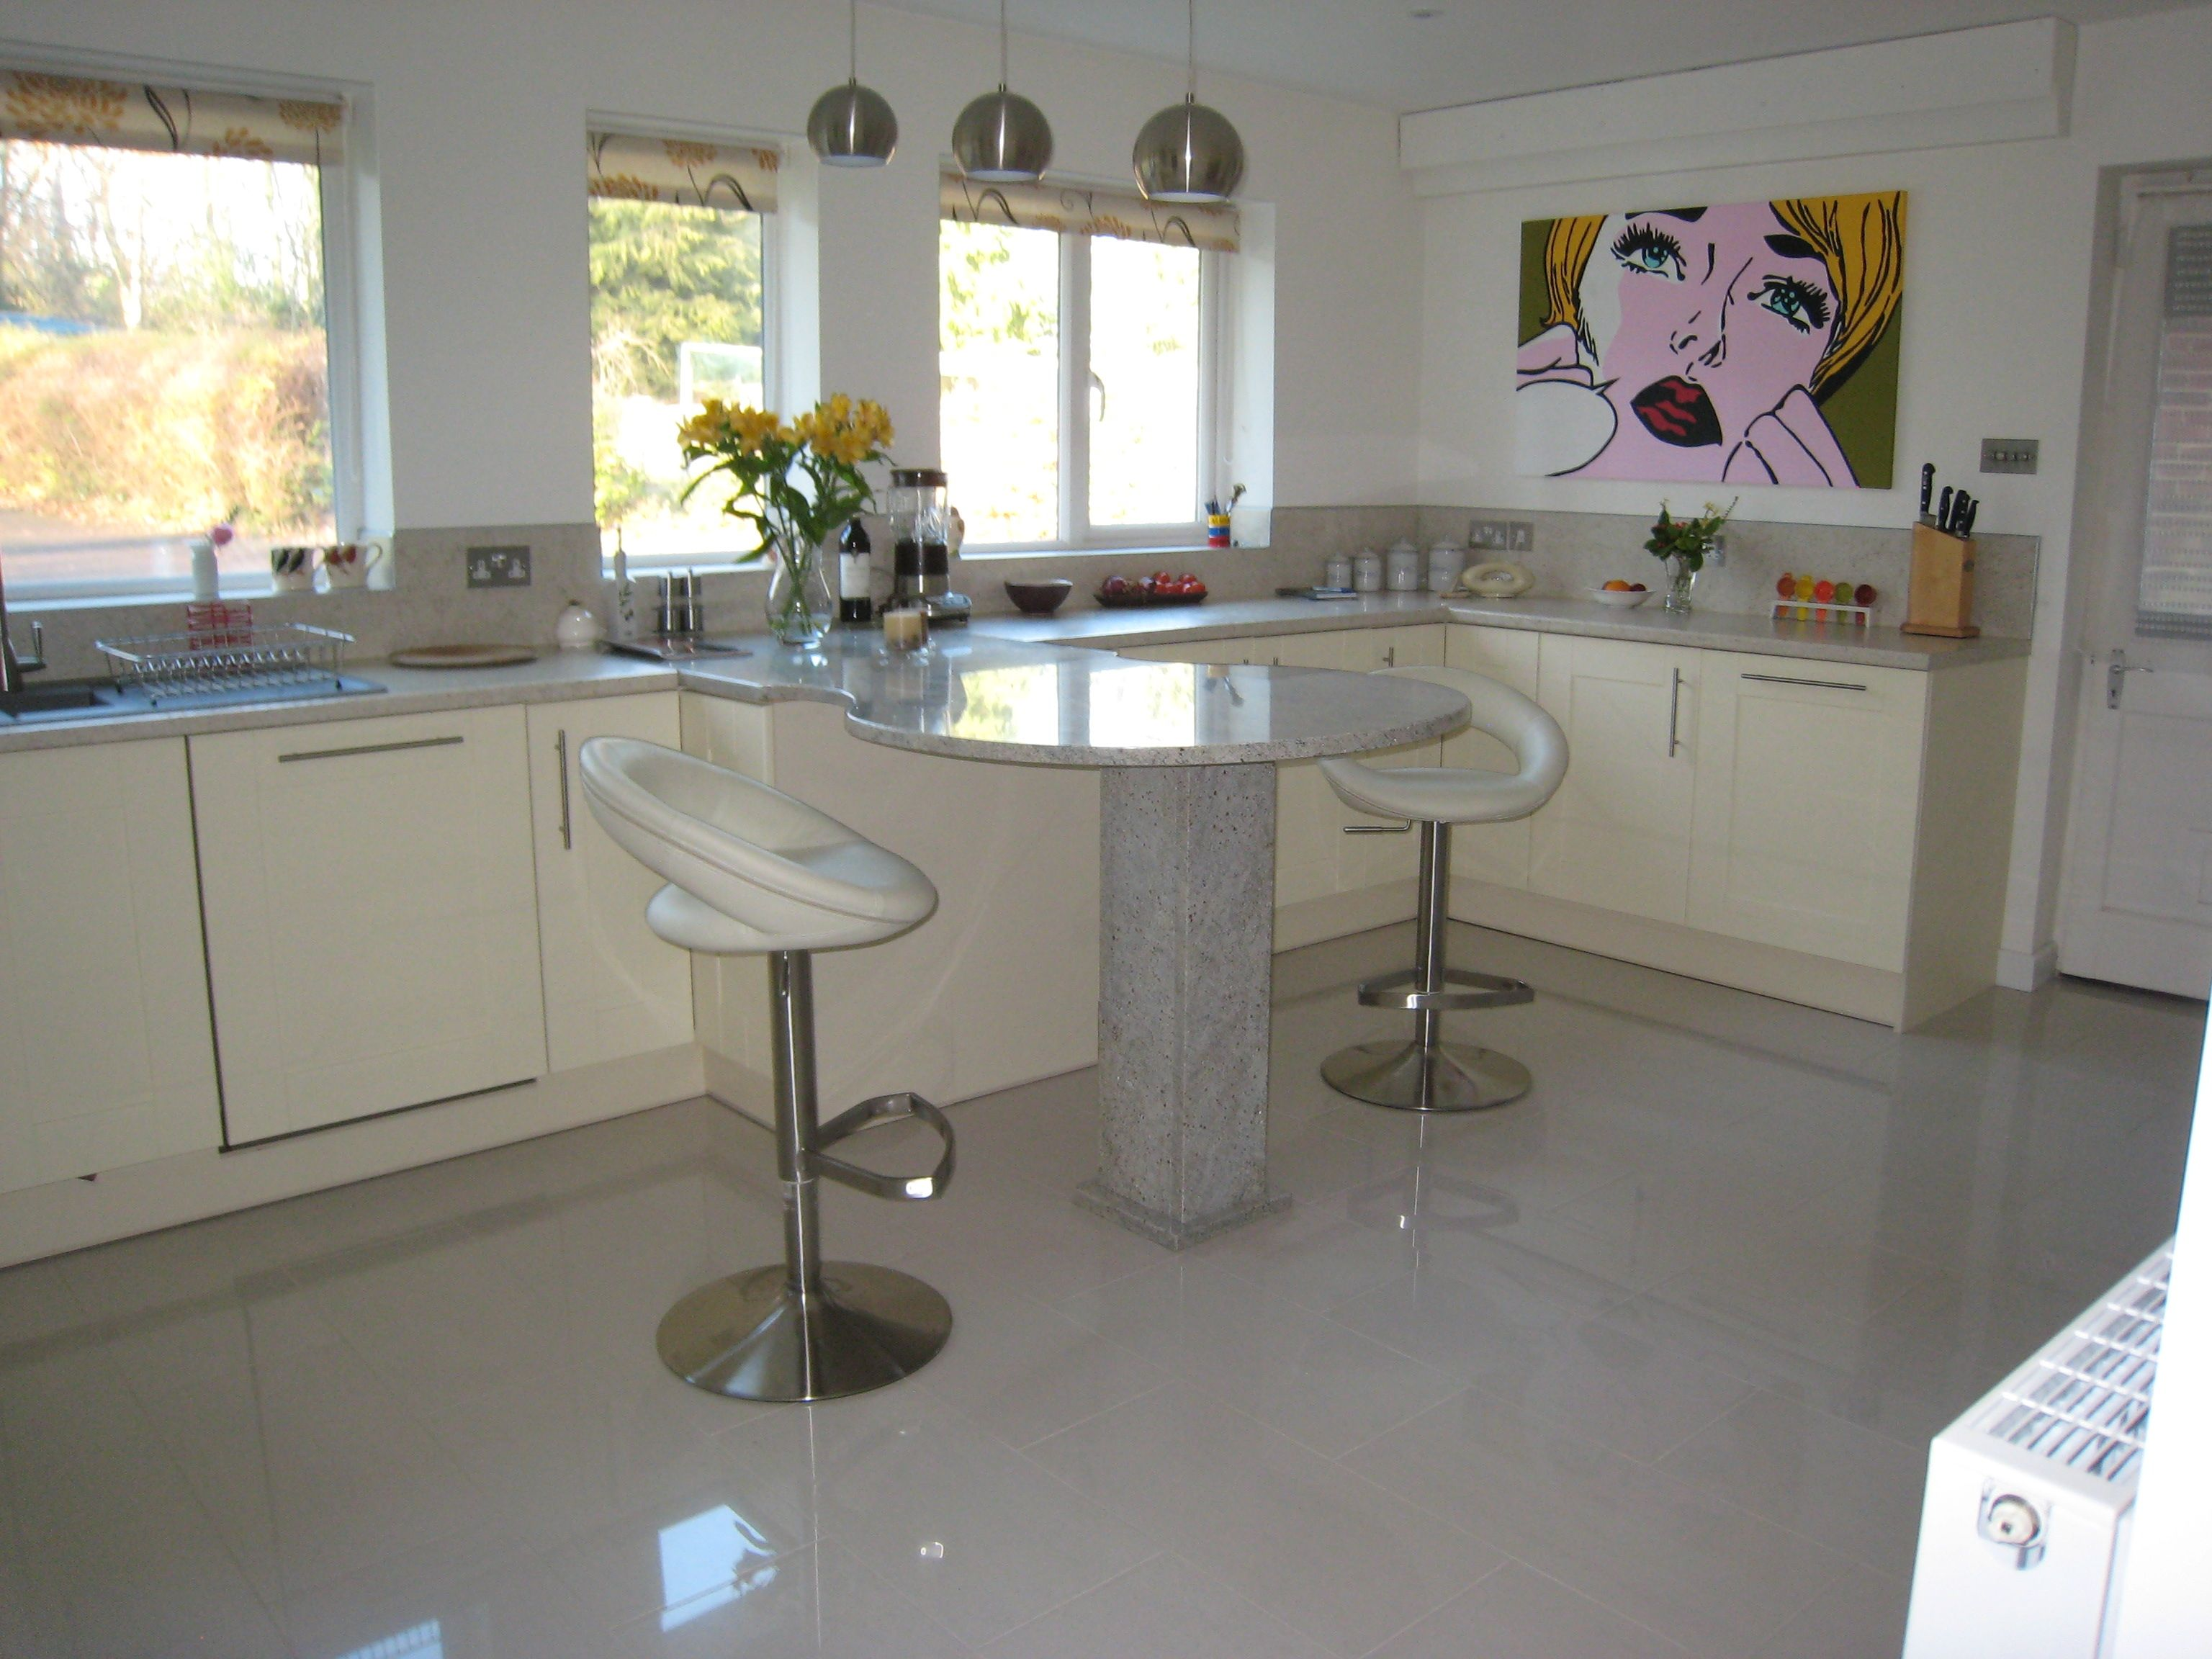 High gloss cream kitchen floor tiles httpnextsoft21 high gloss cream kitchen floor tiles dailygadgetfo Gallery